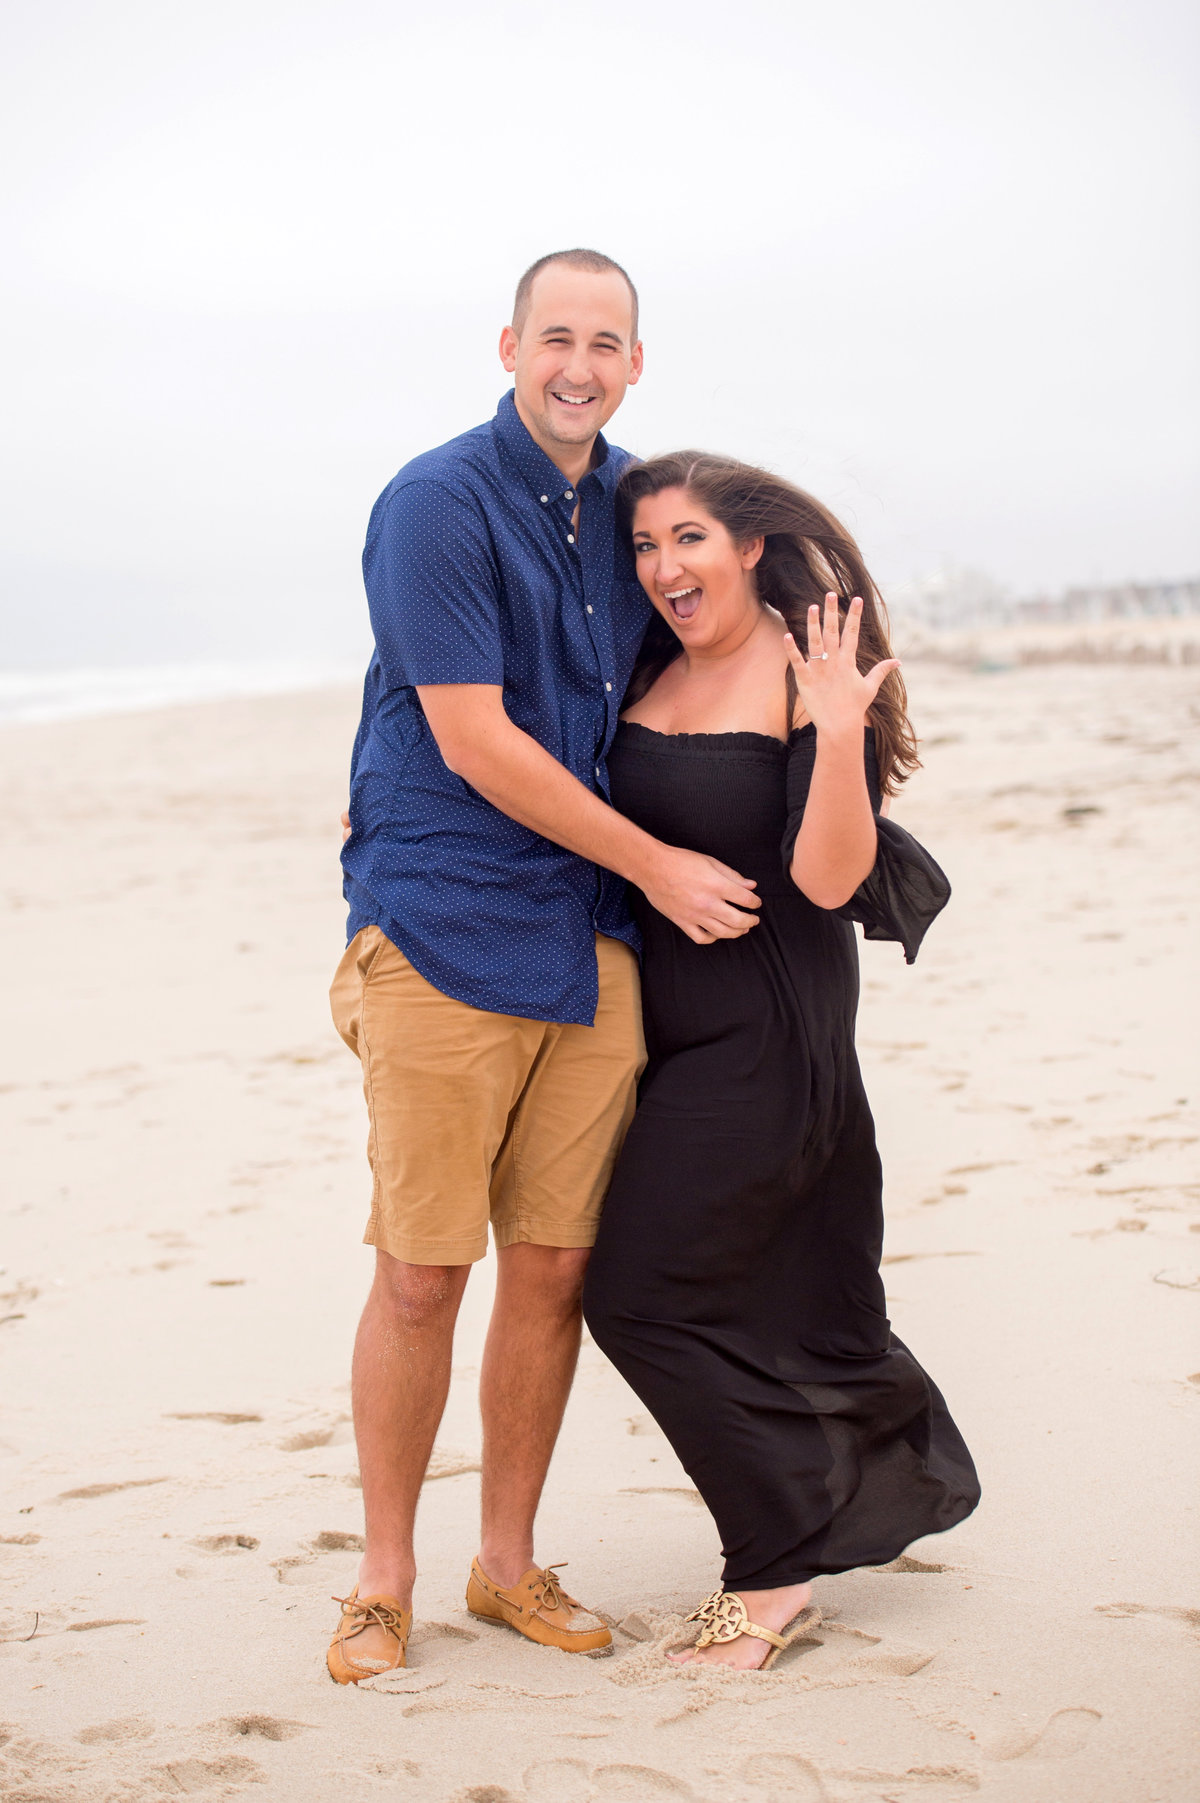 lavallette-beach-surprise-proposal-imagery-by-marianne-26